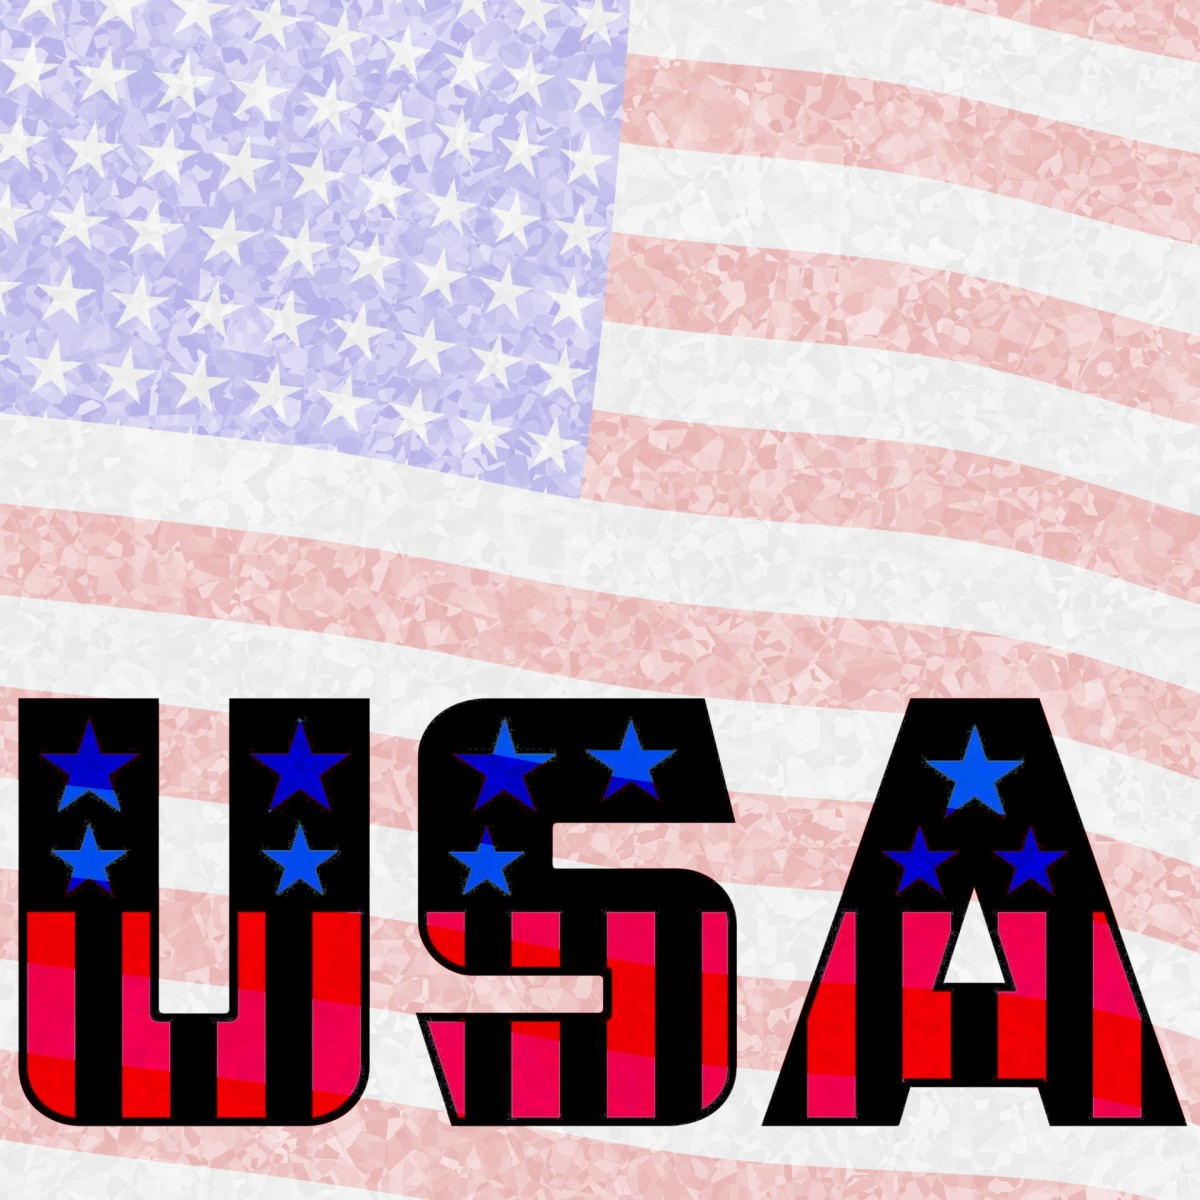 What Would You Change About The United States of America?